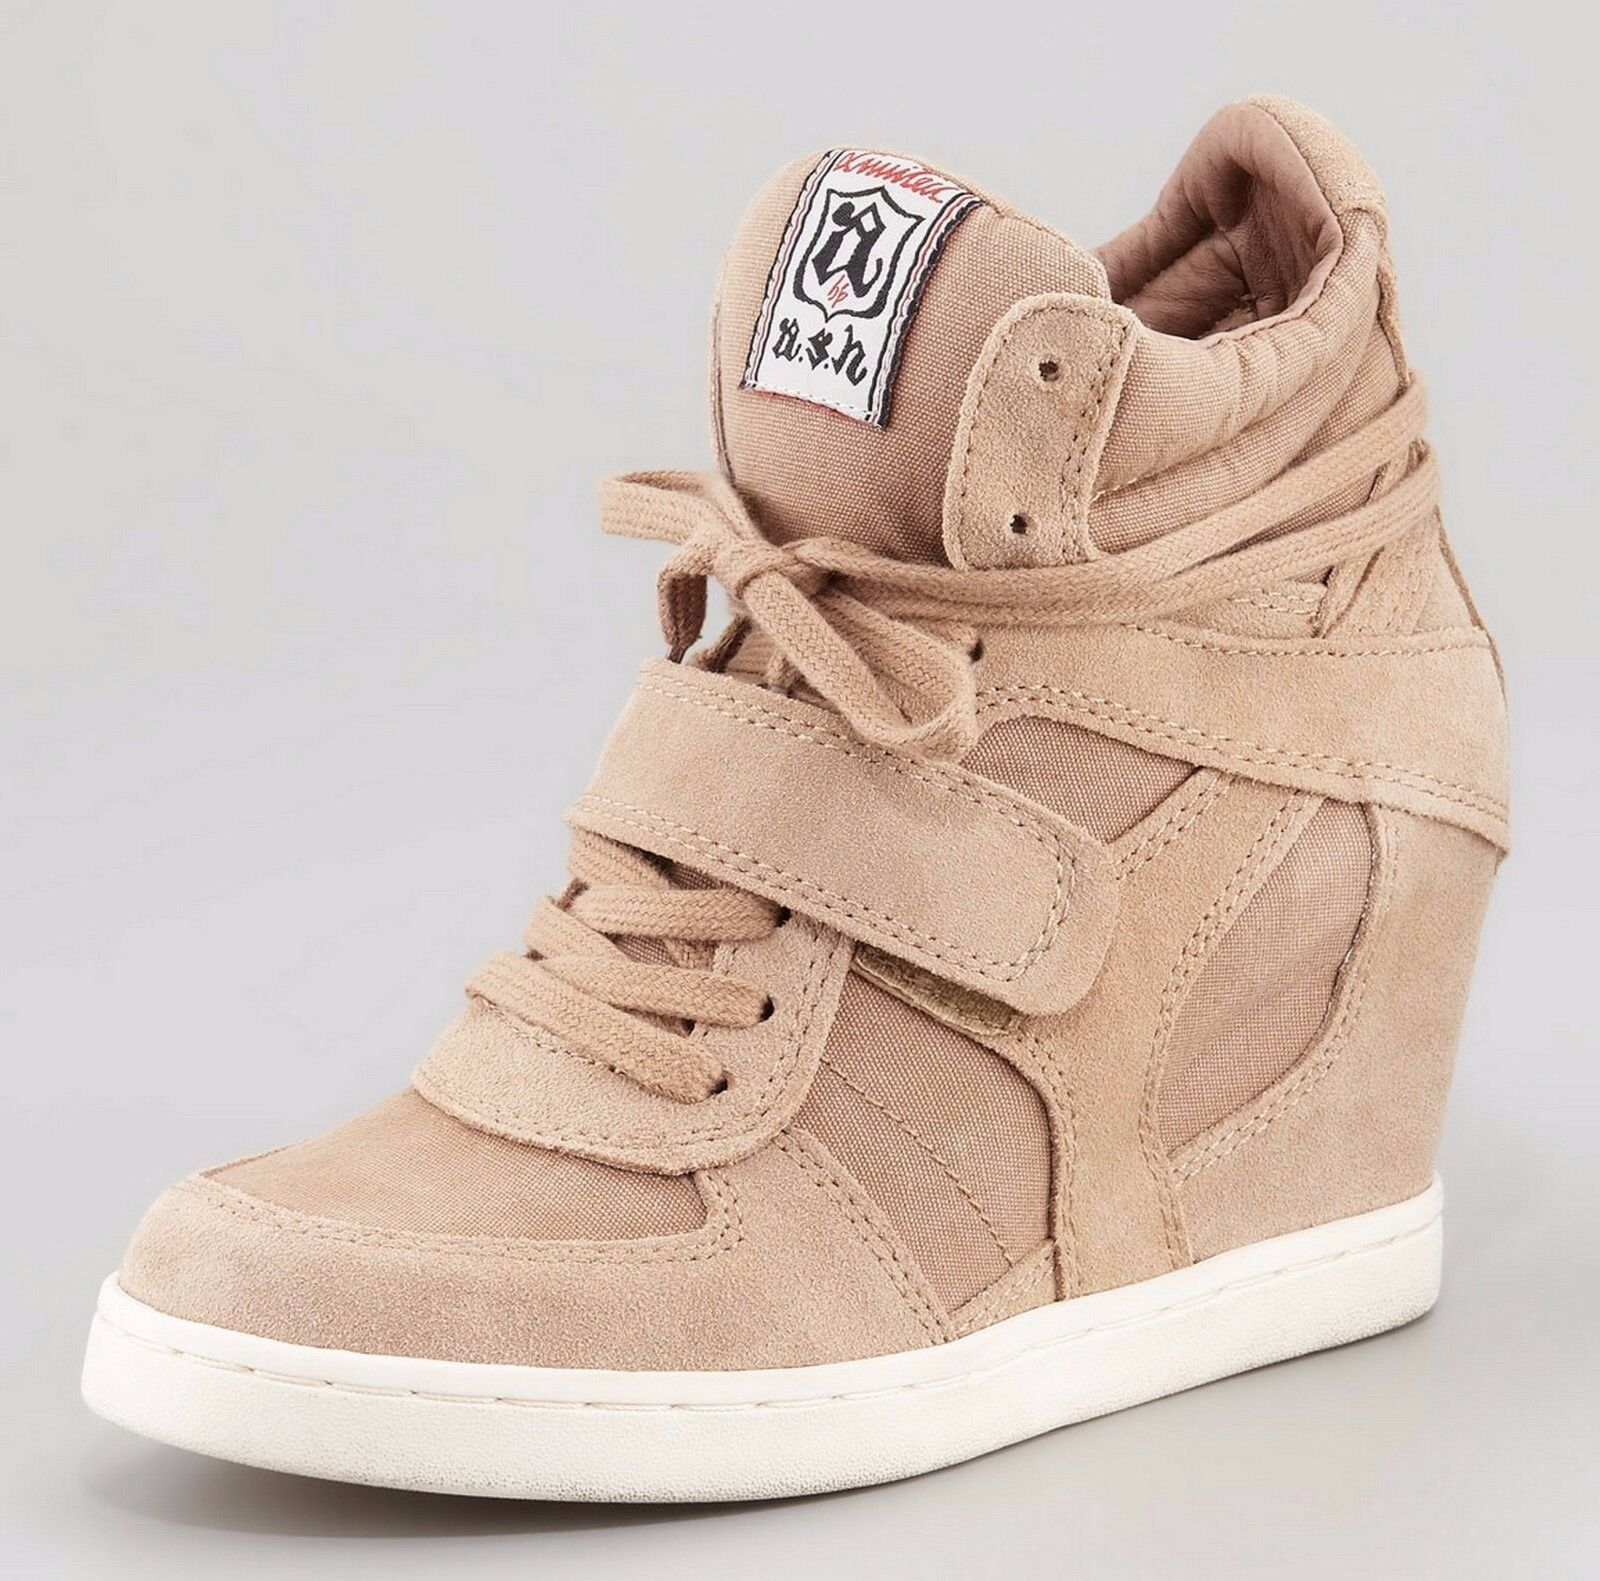 New with Box Ash COOL Suede Wedge Bottesies Sneakers Chaussures, BEIGE, EUR 37